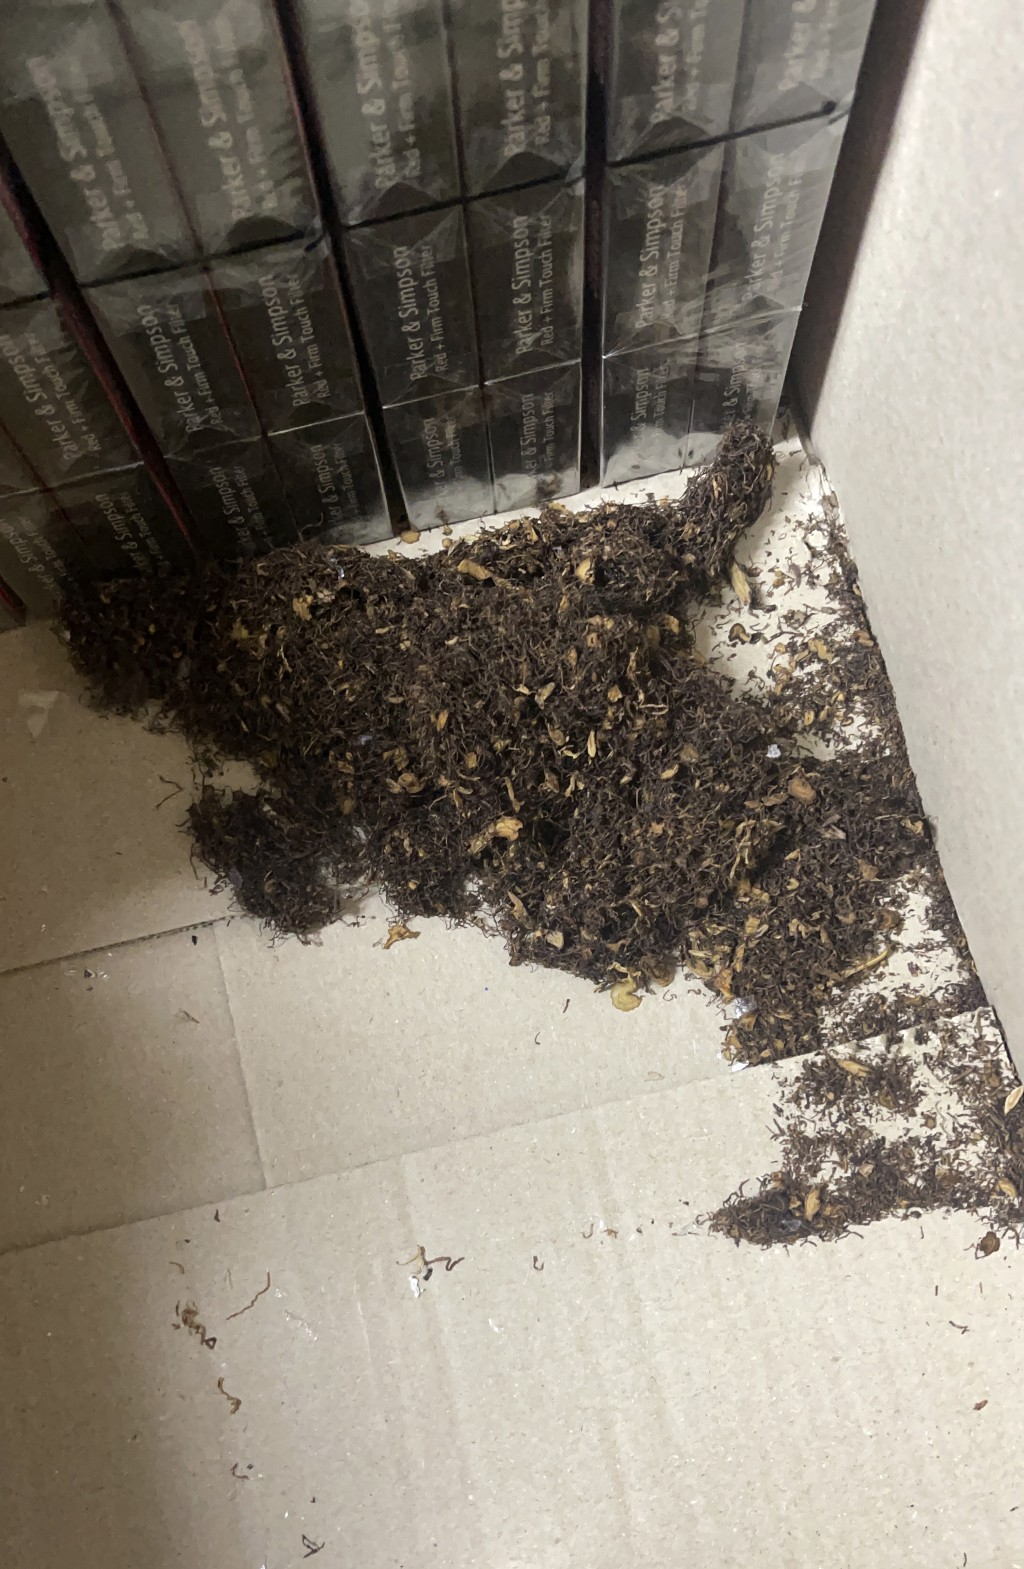 The remnants of tobacco lie on the floor at the Spar supermarket in the town of Gulargambone, Australia, on March 23, 2021. Droughts. Wildfires. Flood...